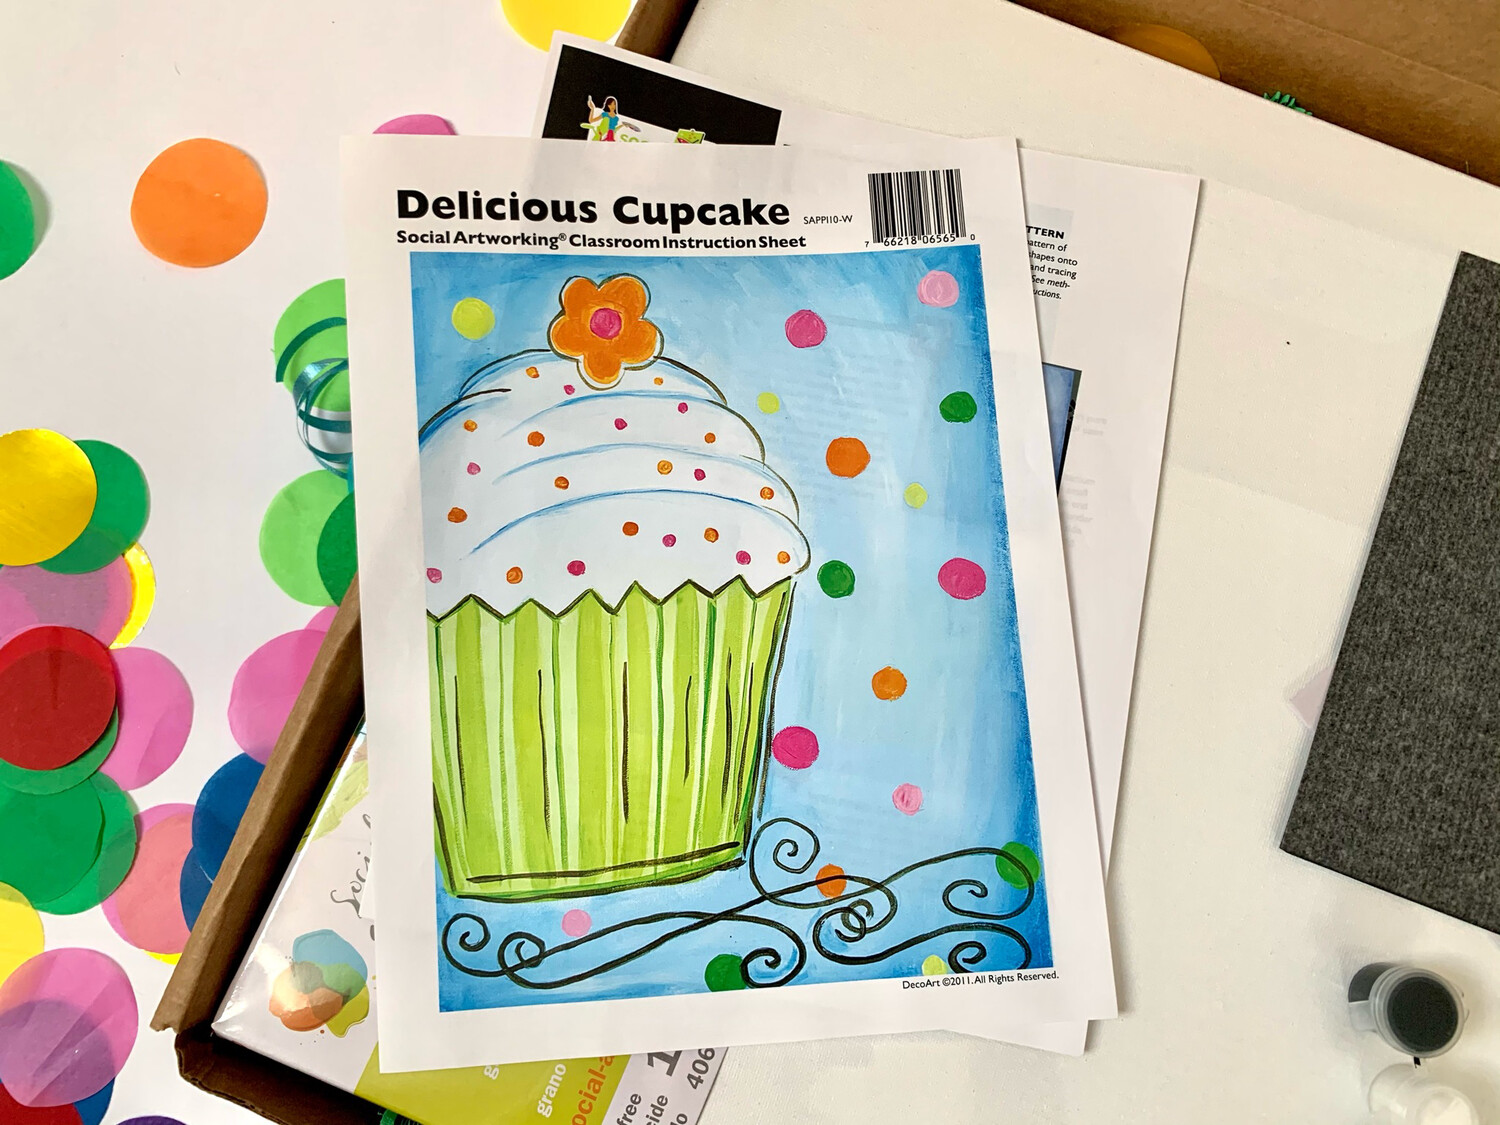 Delicious Cupcake ADULT Acrylic Paint On Canvas DIY Art Kit